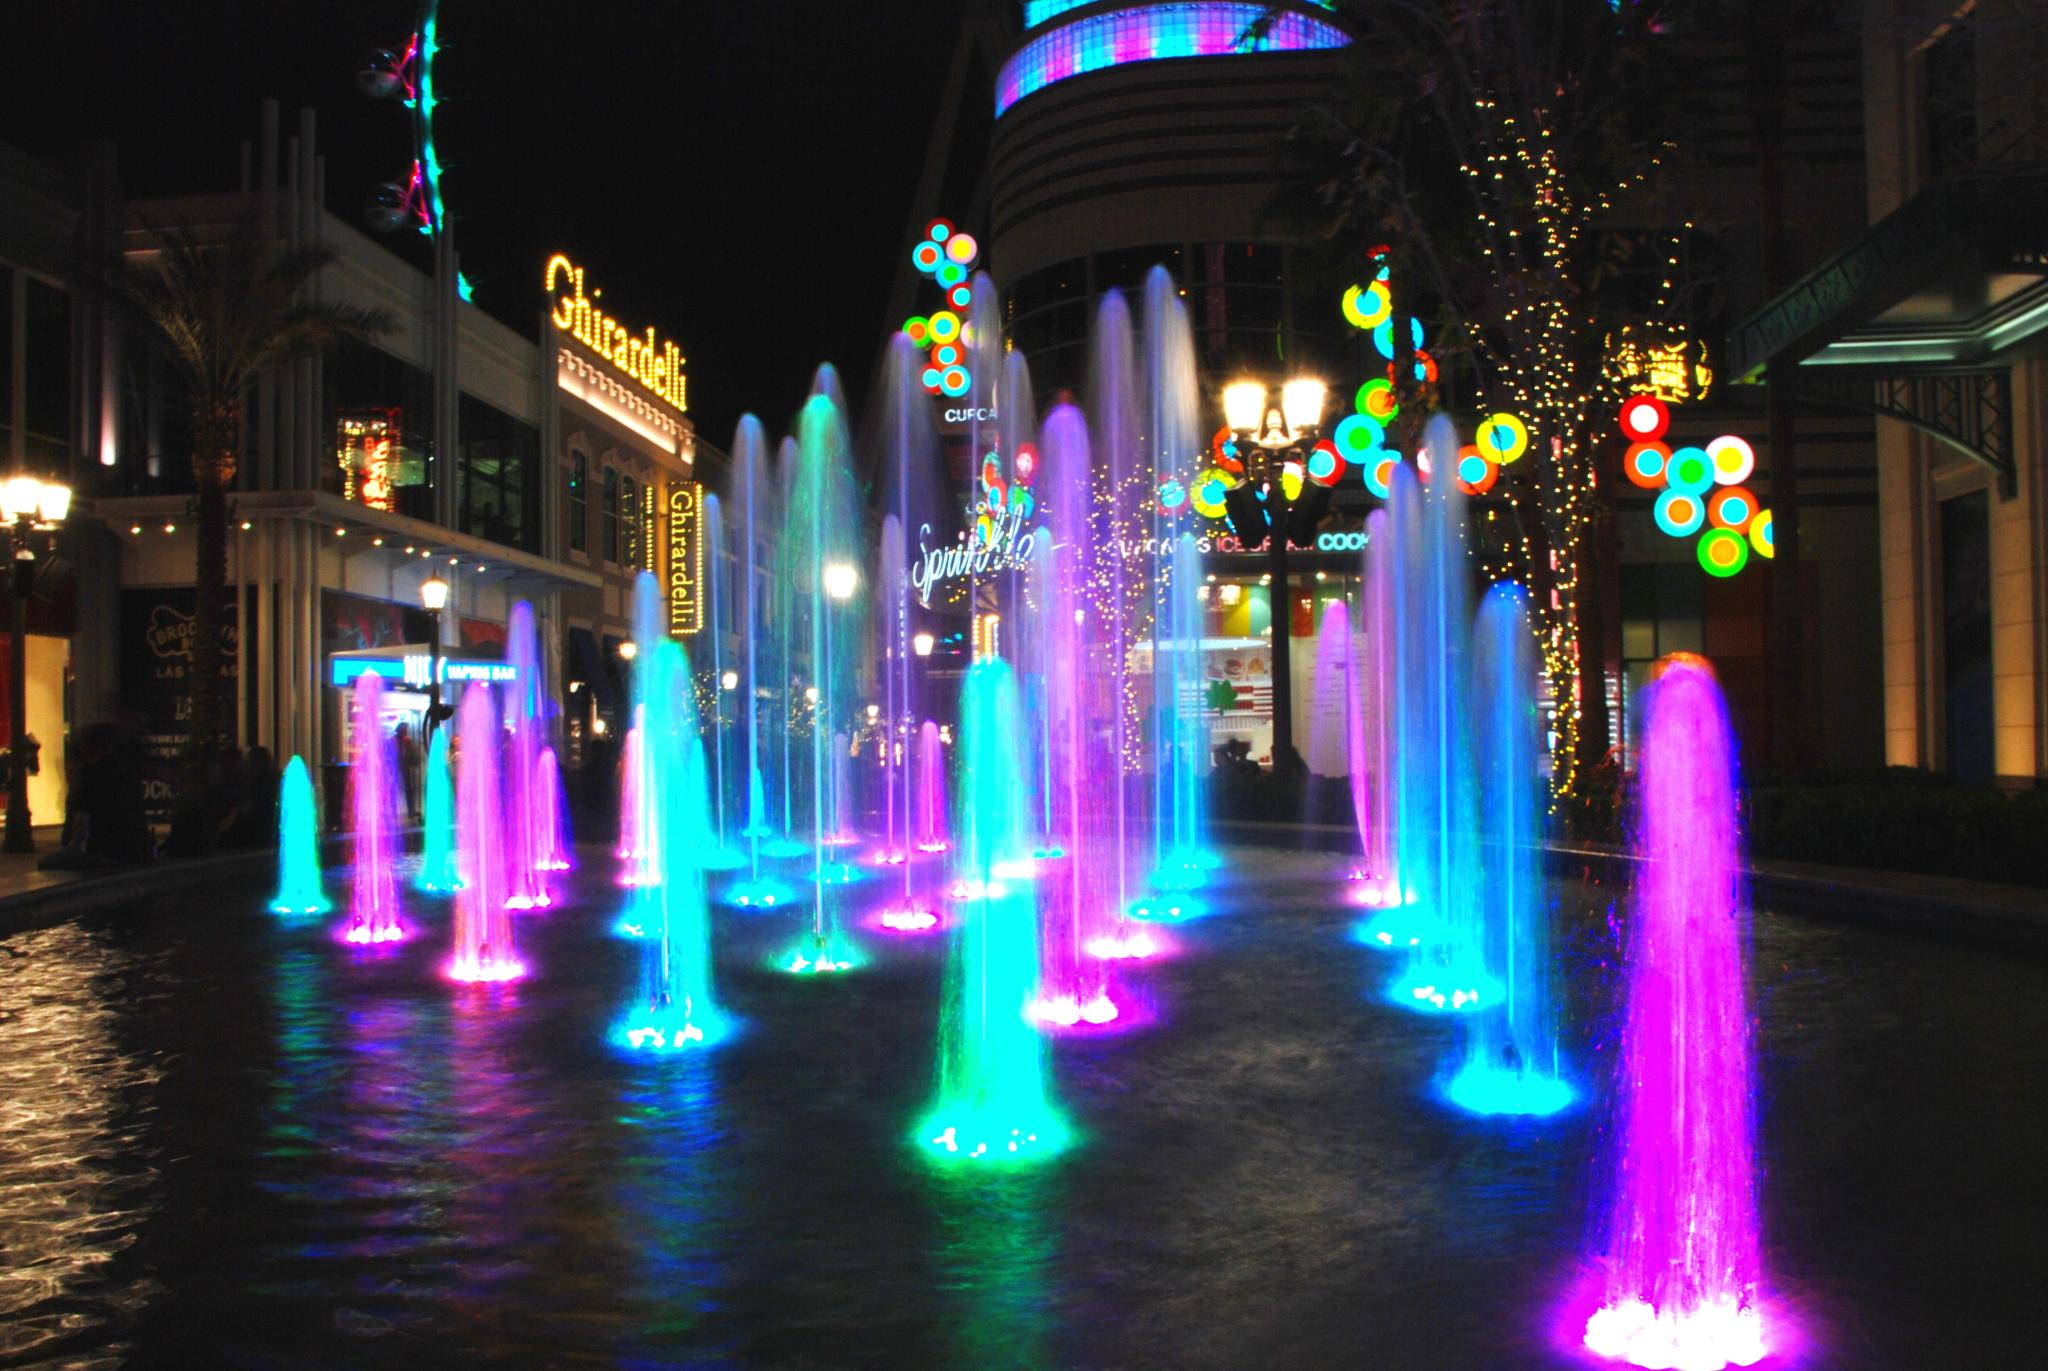 Vegas - Colorful Fountain at the High-Roller Promenade 2 by Rogelio Flores